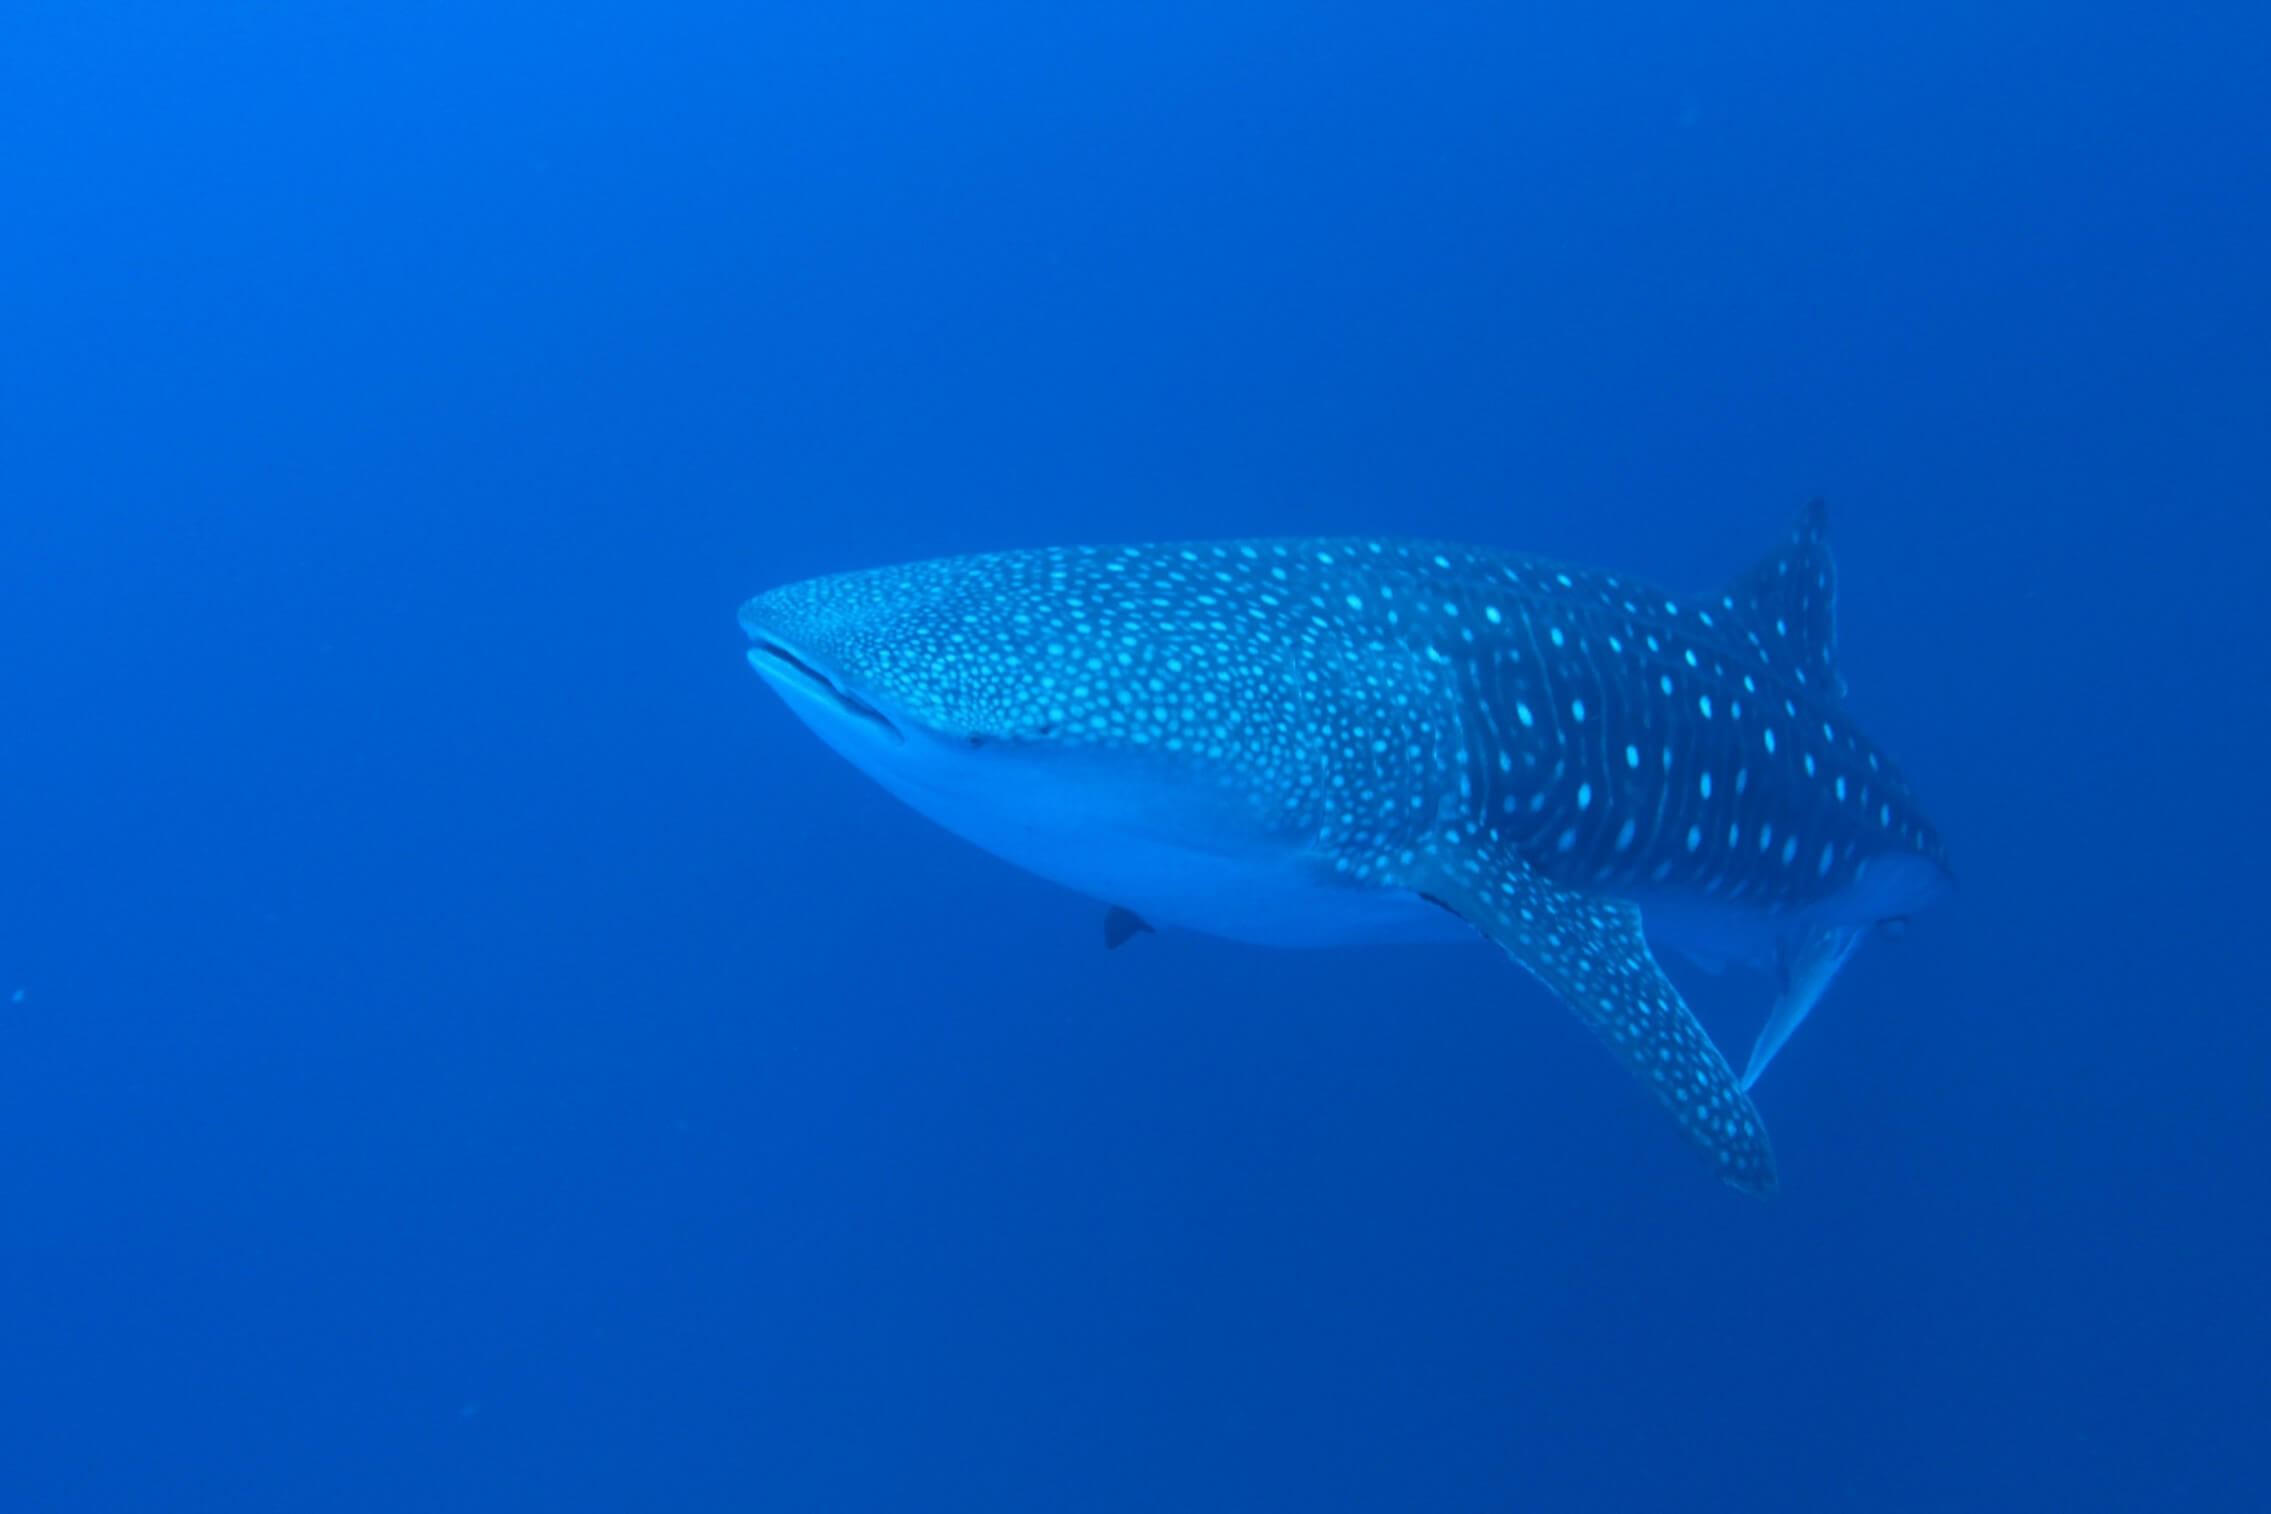 whale shark swims in the blue